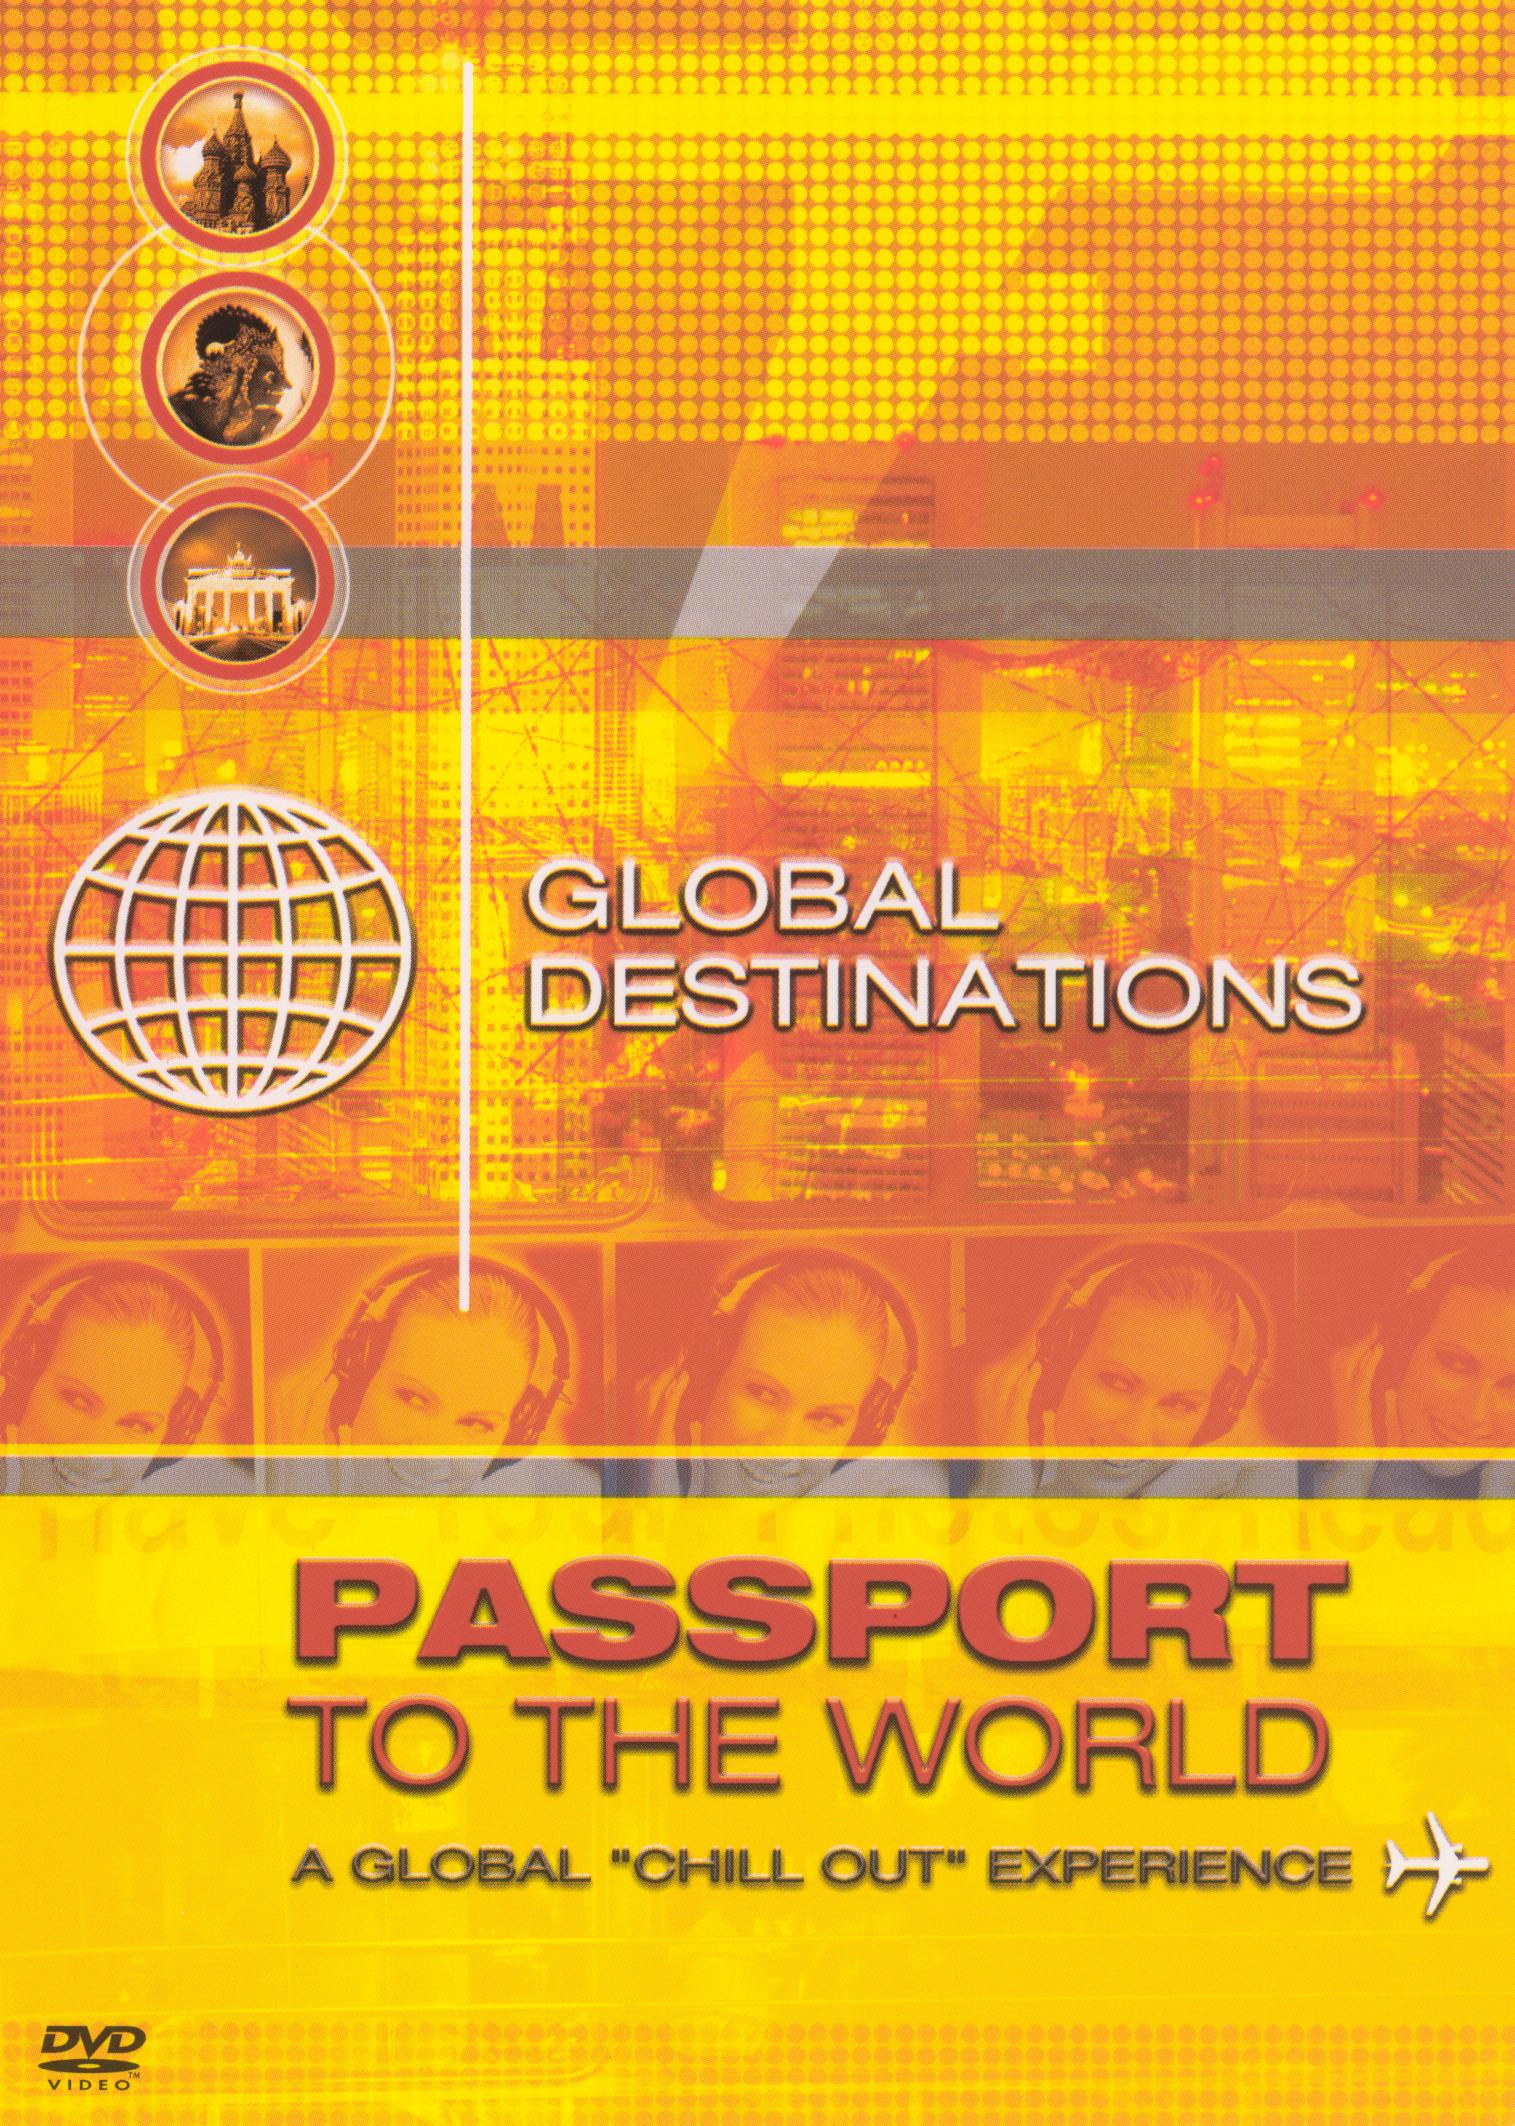 Global Destinations: Passport to the World